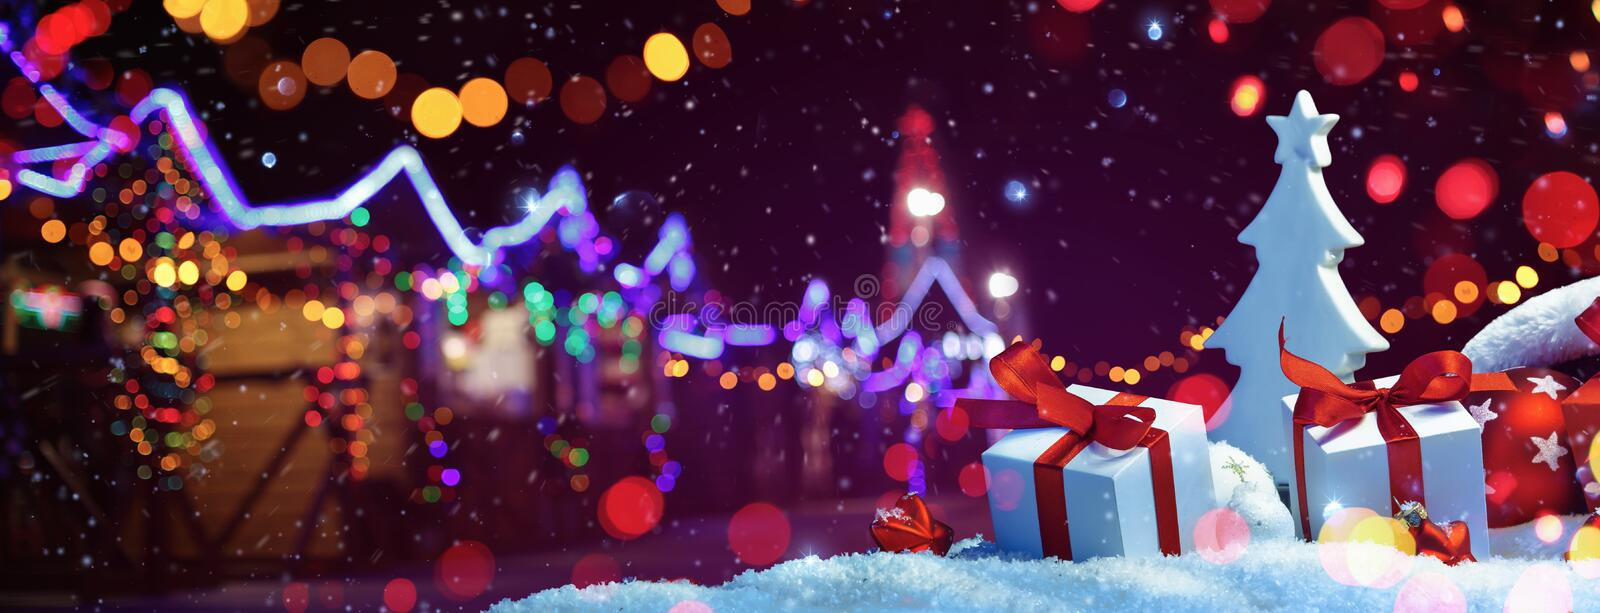 Christmas Fair with Street Festive Light. Holiday concept royalty free stock images